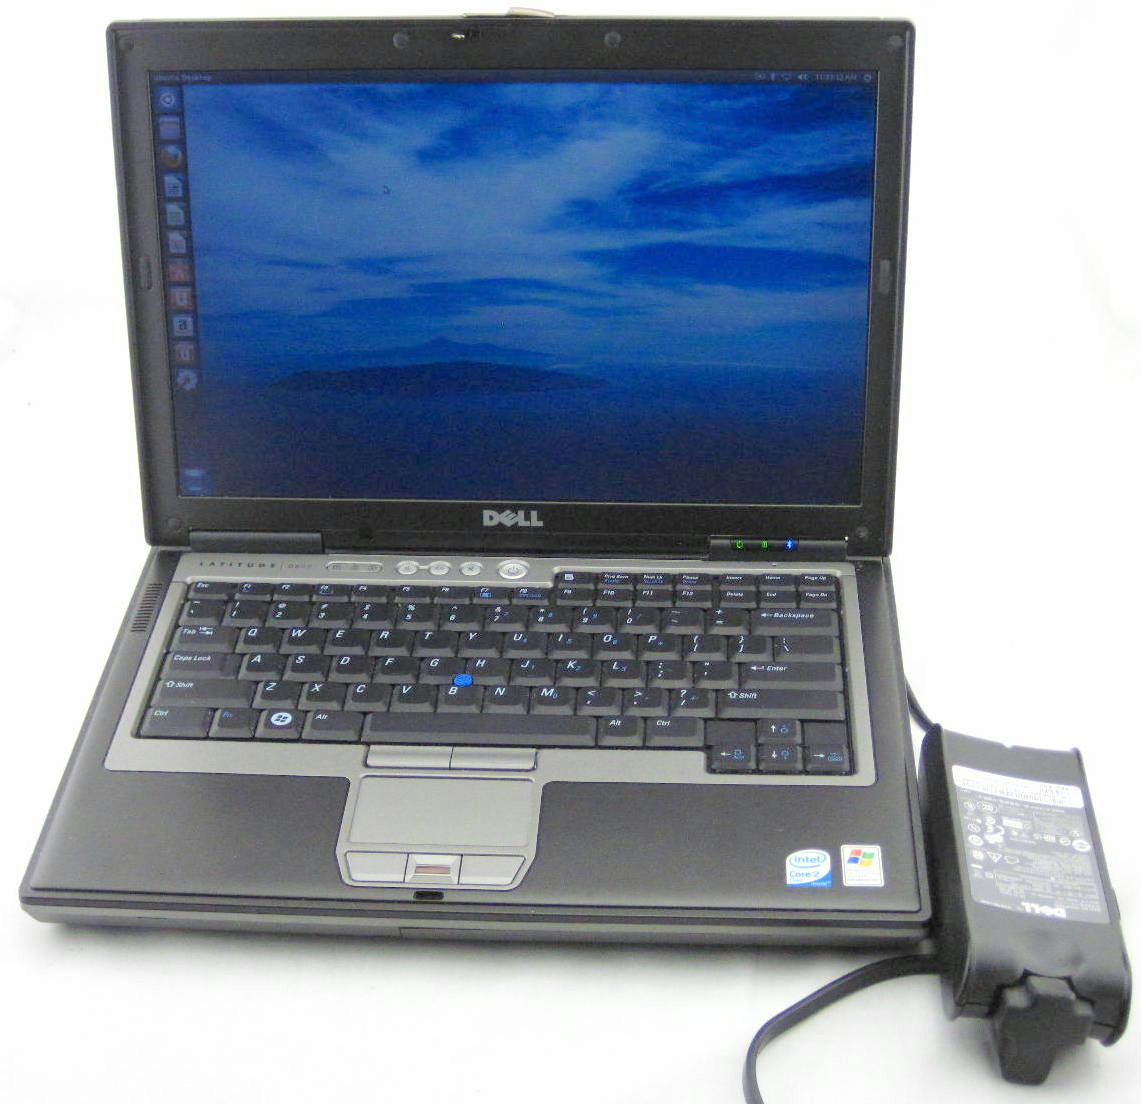 Dell Latitude D620 Usb Drivers For Xp Free Download